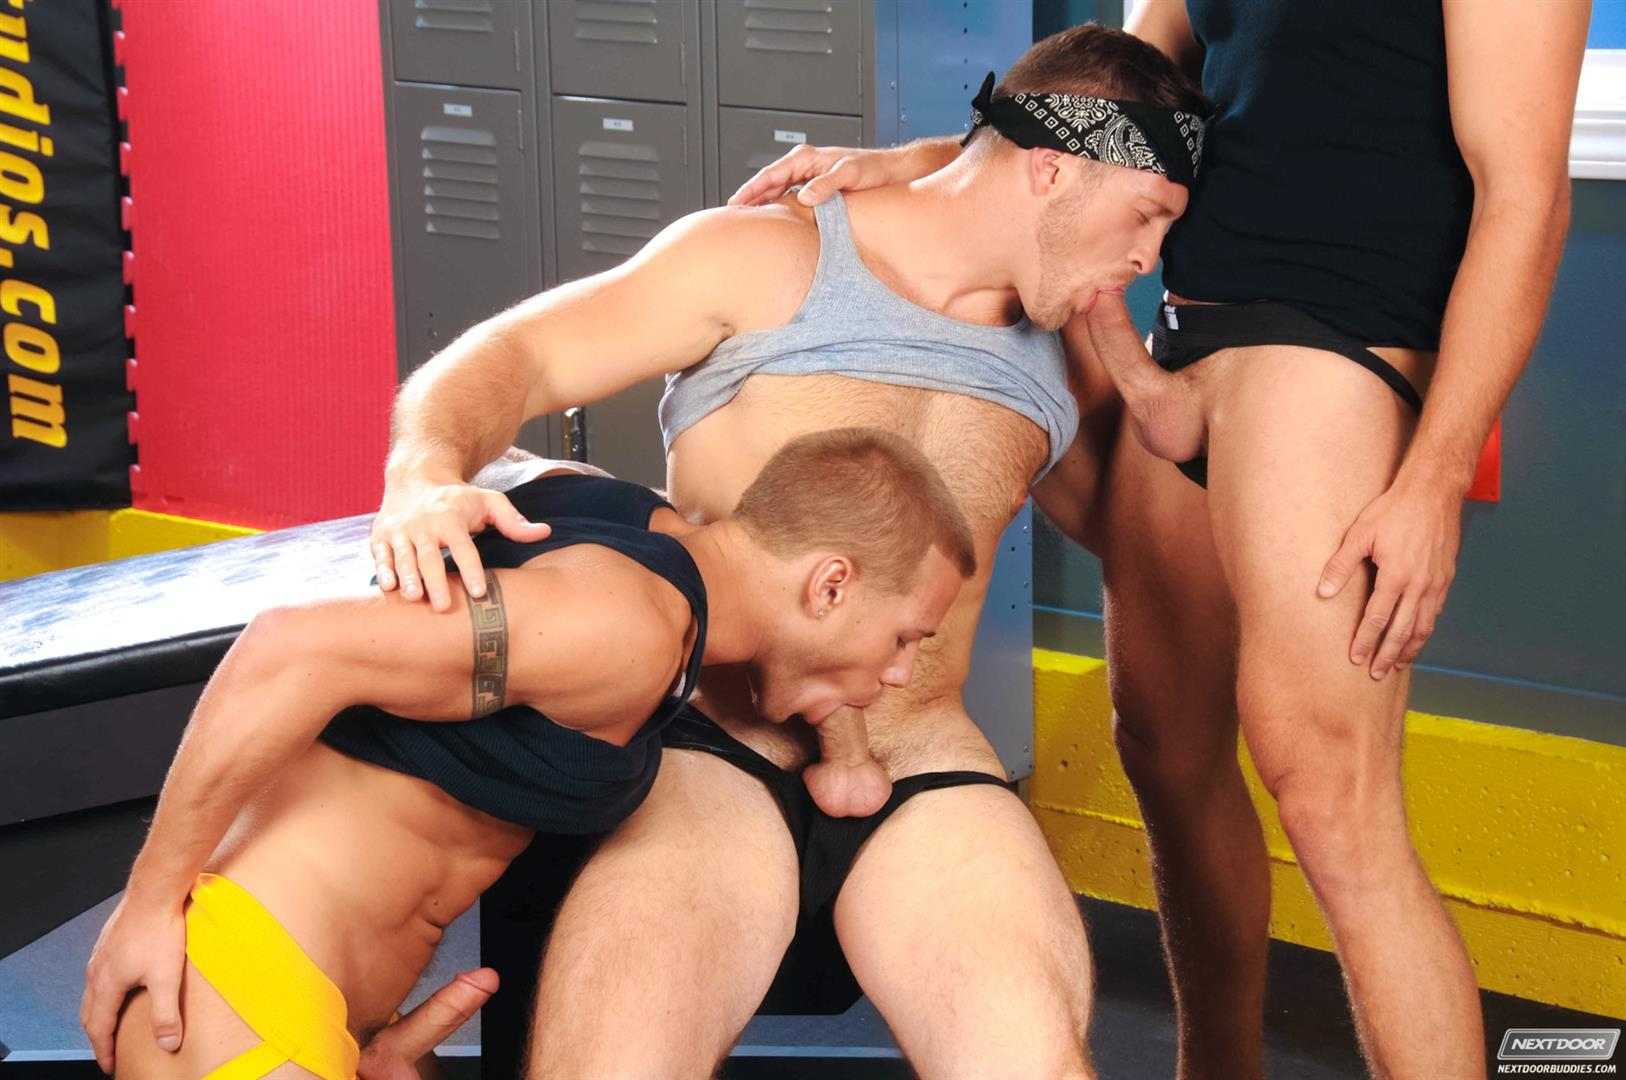 Next-Door-Buddies-Brandon-Lewis-Paul-Wagner-Brody-Wilder-Hung-Jocks-Fucking-In-The-Locker-Room-Amateur-Gay-Porn-04 Muscle Jocks Tag Teaming A Hot Muscle Ass In The Gym Locker Room